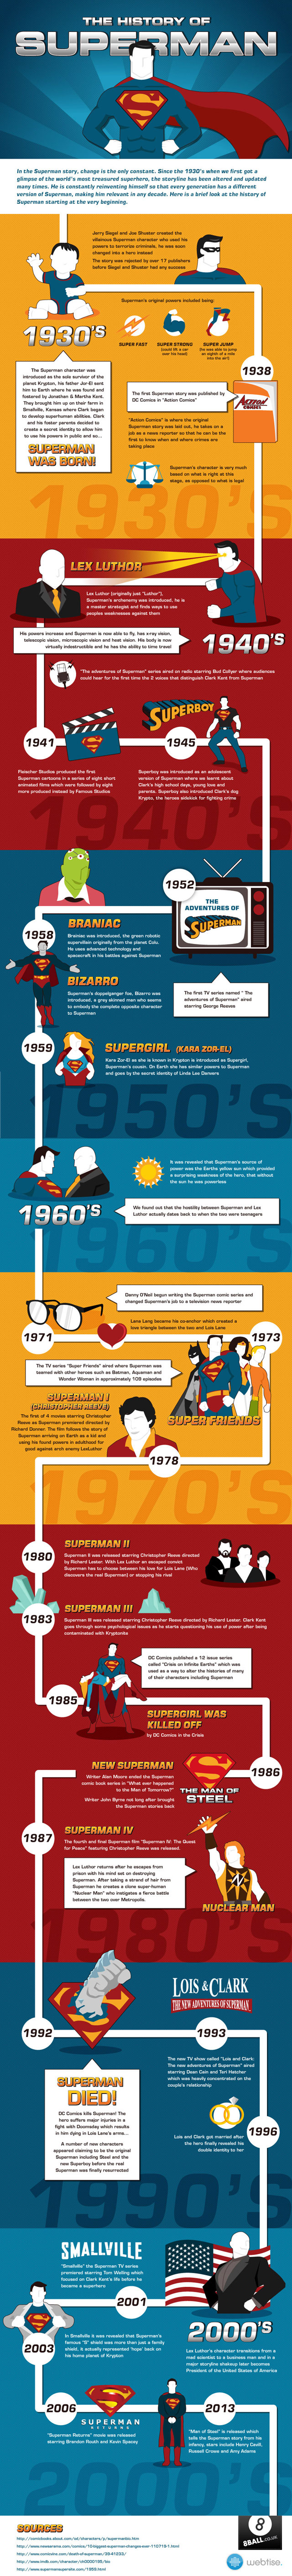 the-history-of-superman_515bhjkee41d8005d